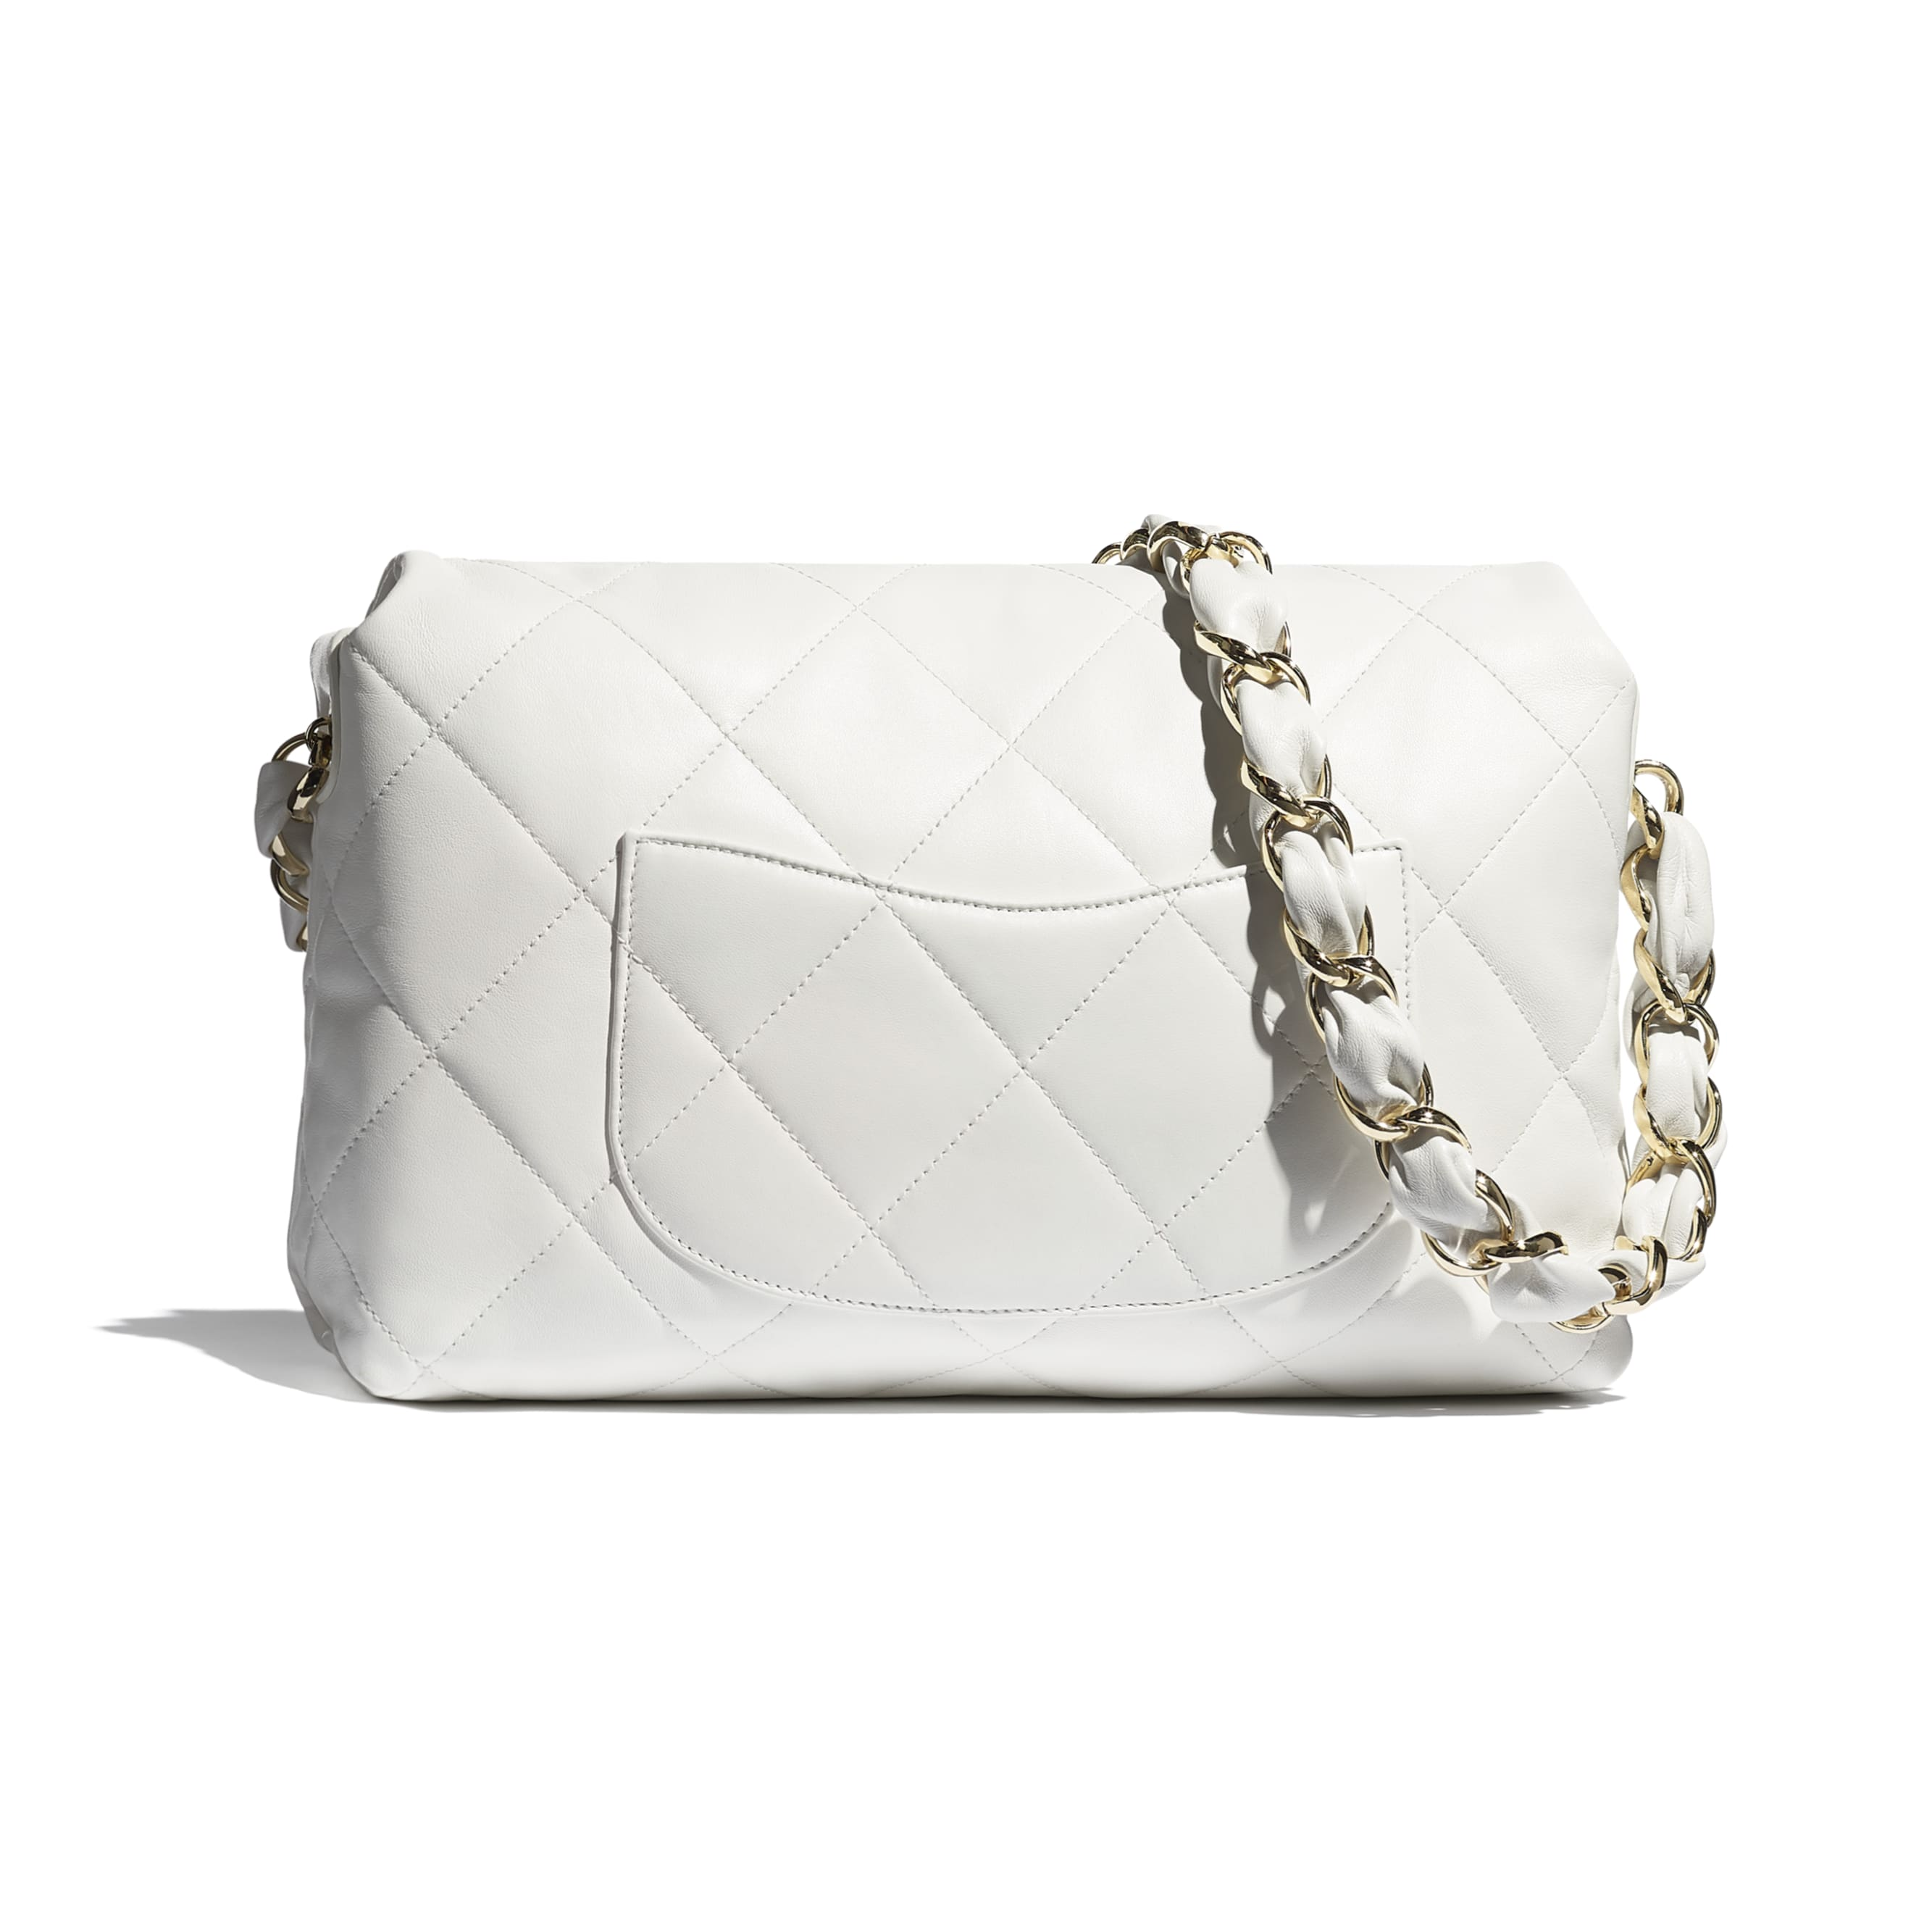 Large Flap Bag - White - Lambskin - CHANEL - Alternative view - see standard sized version